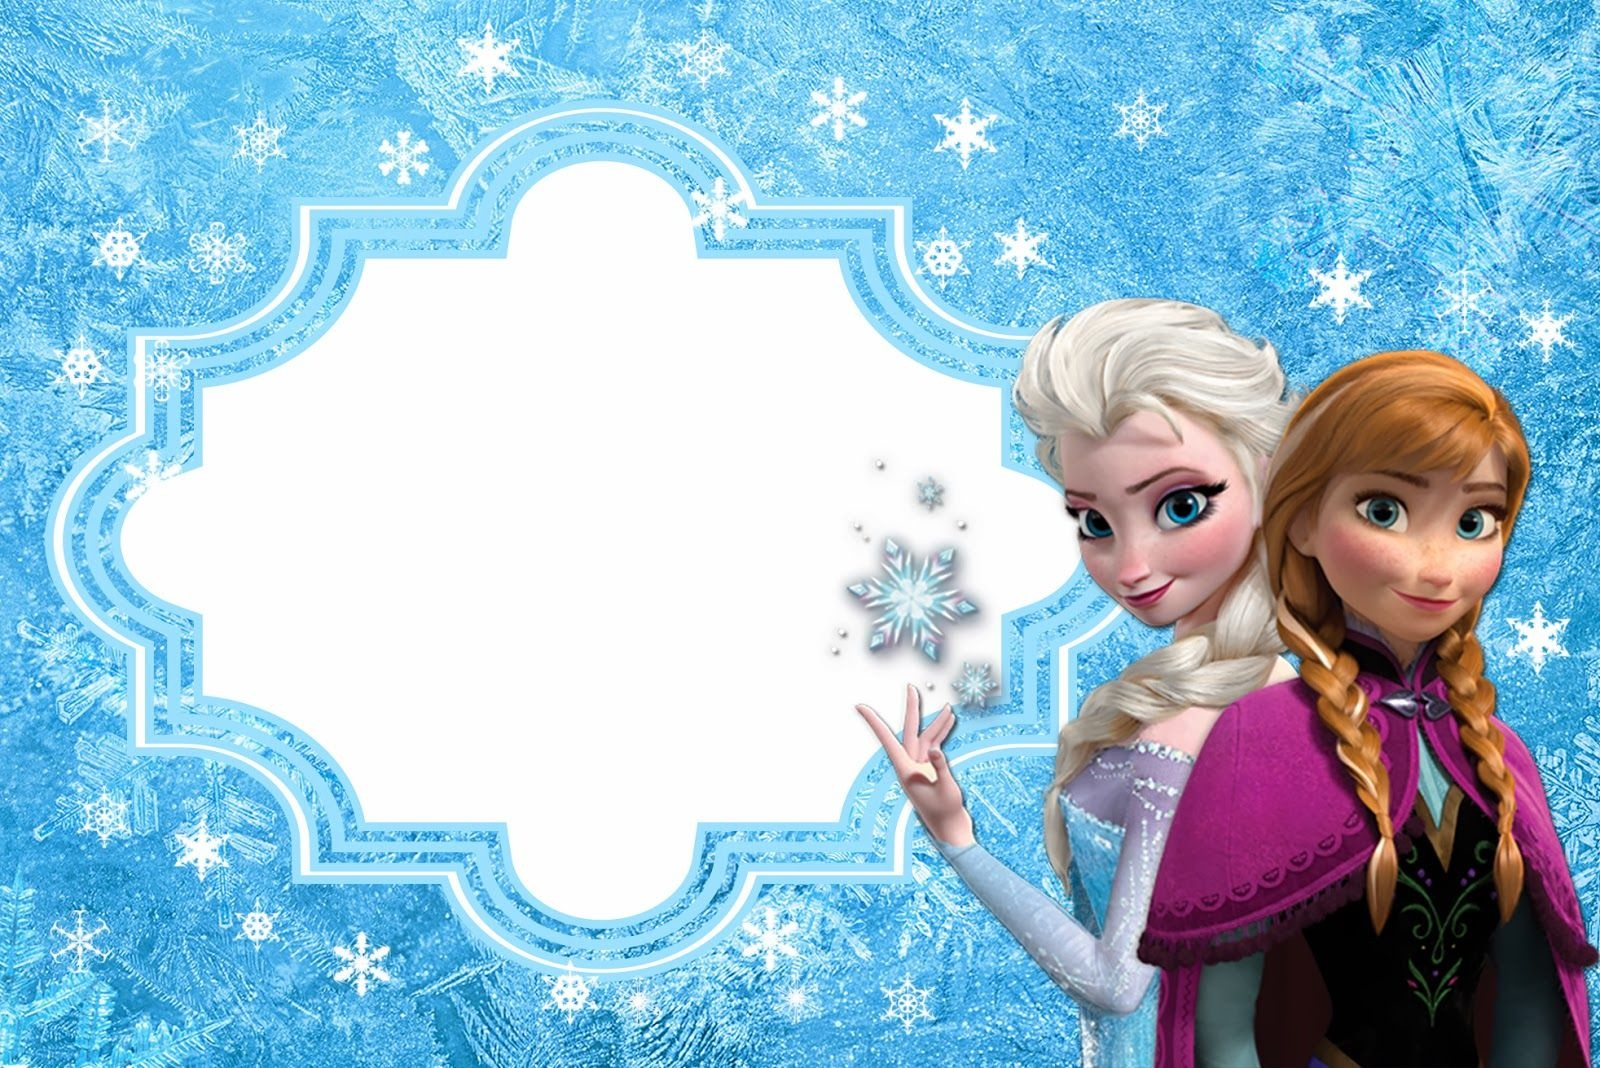 Frozen: Free Printable Cards Or Party Invitations. | Disney's - Free Printable Frozen Birthday Cards